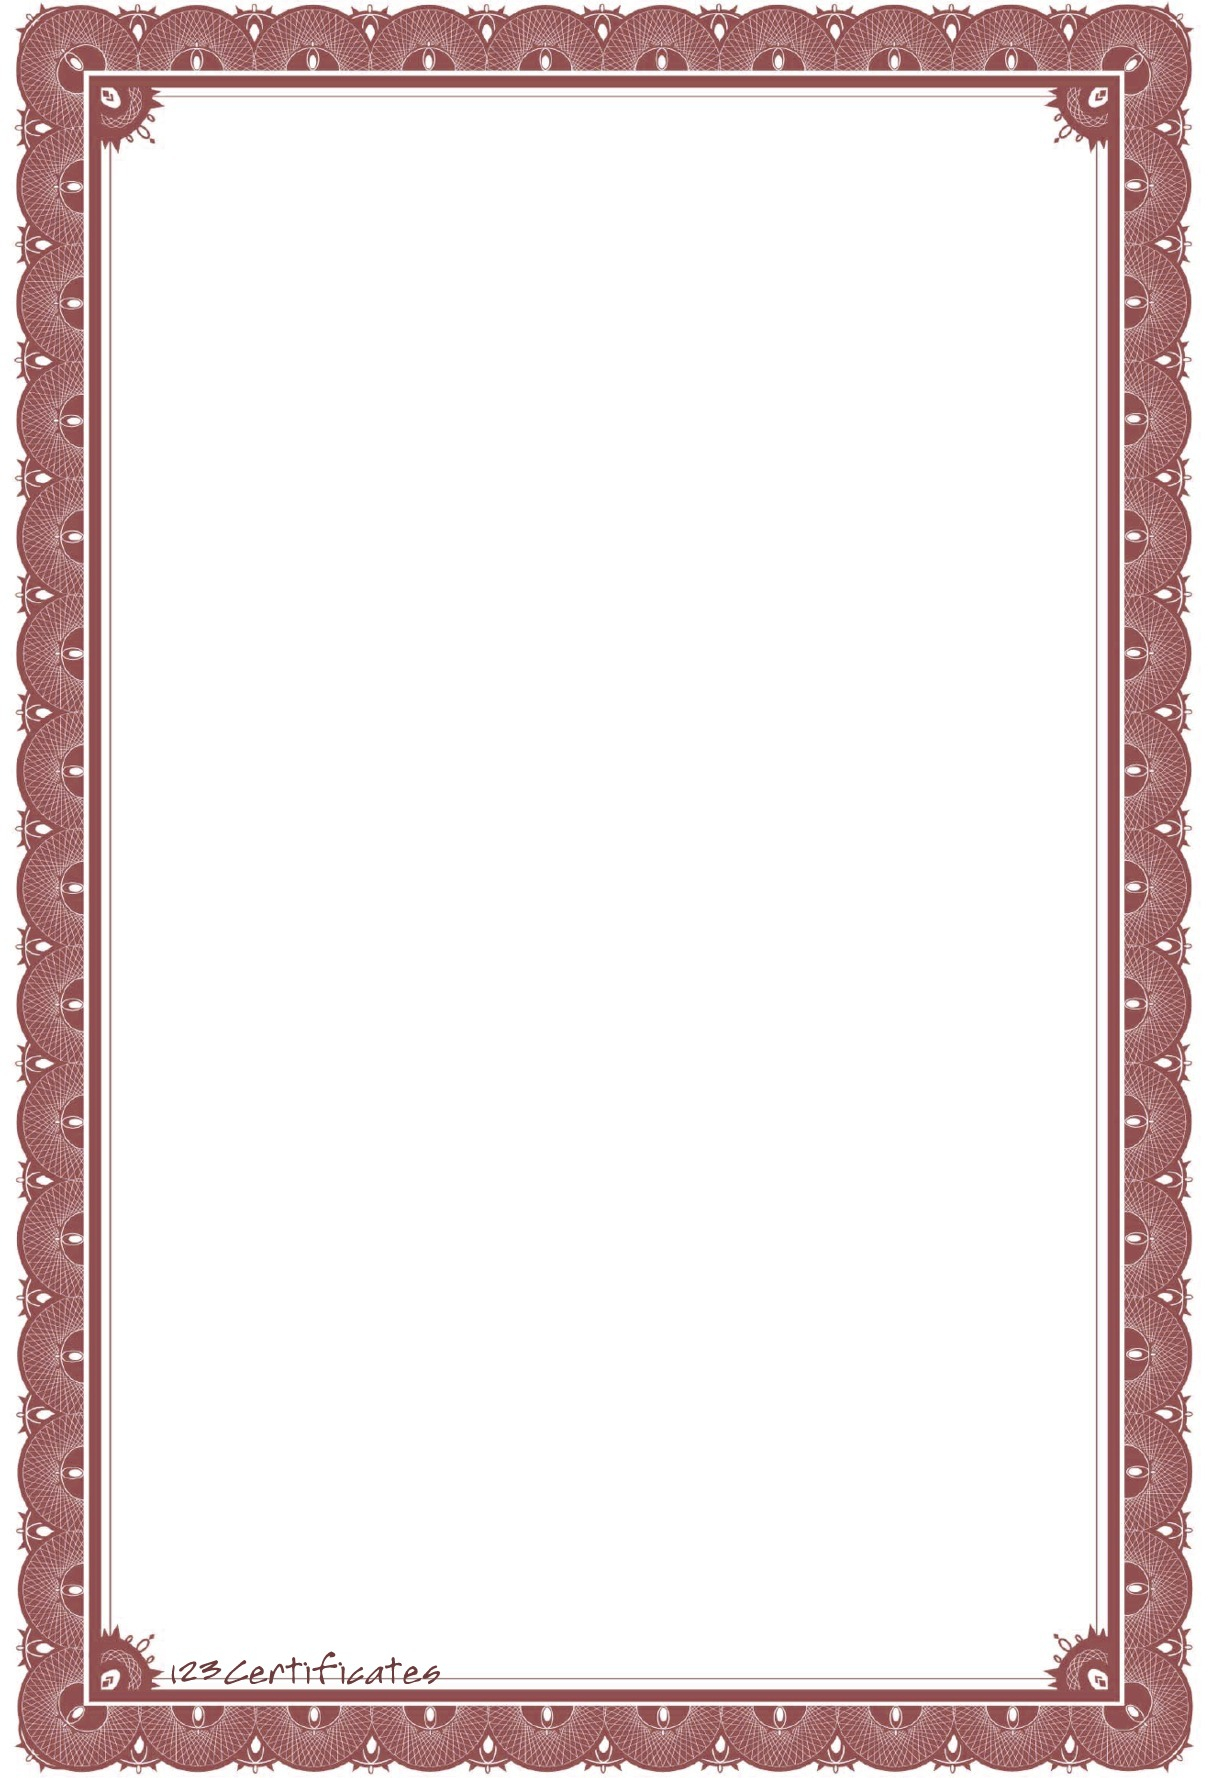 certificate borders to certificate templates for certificate border portrait jpg file